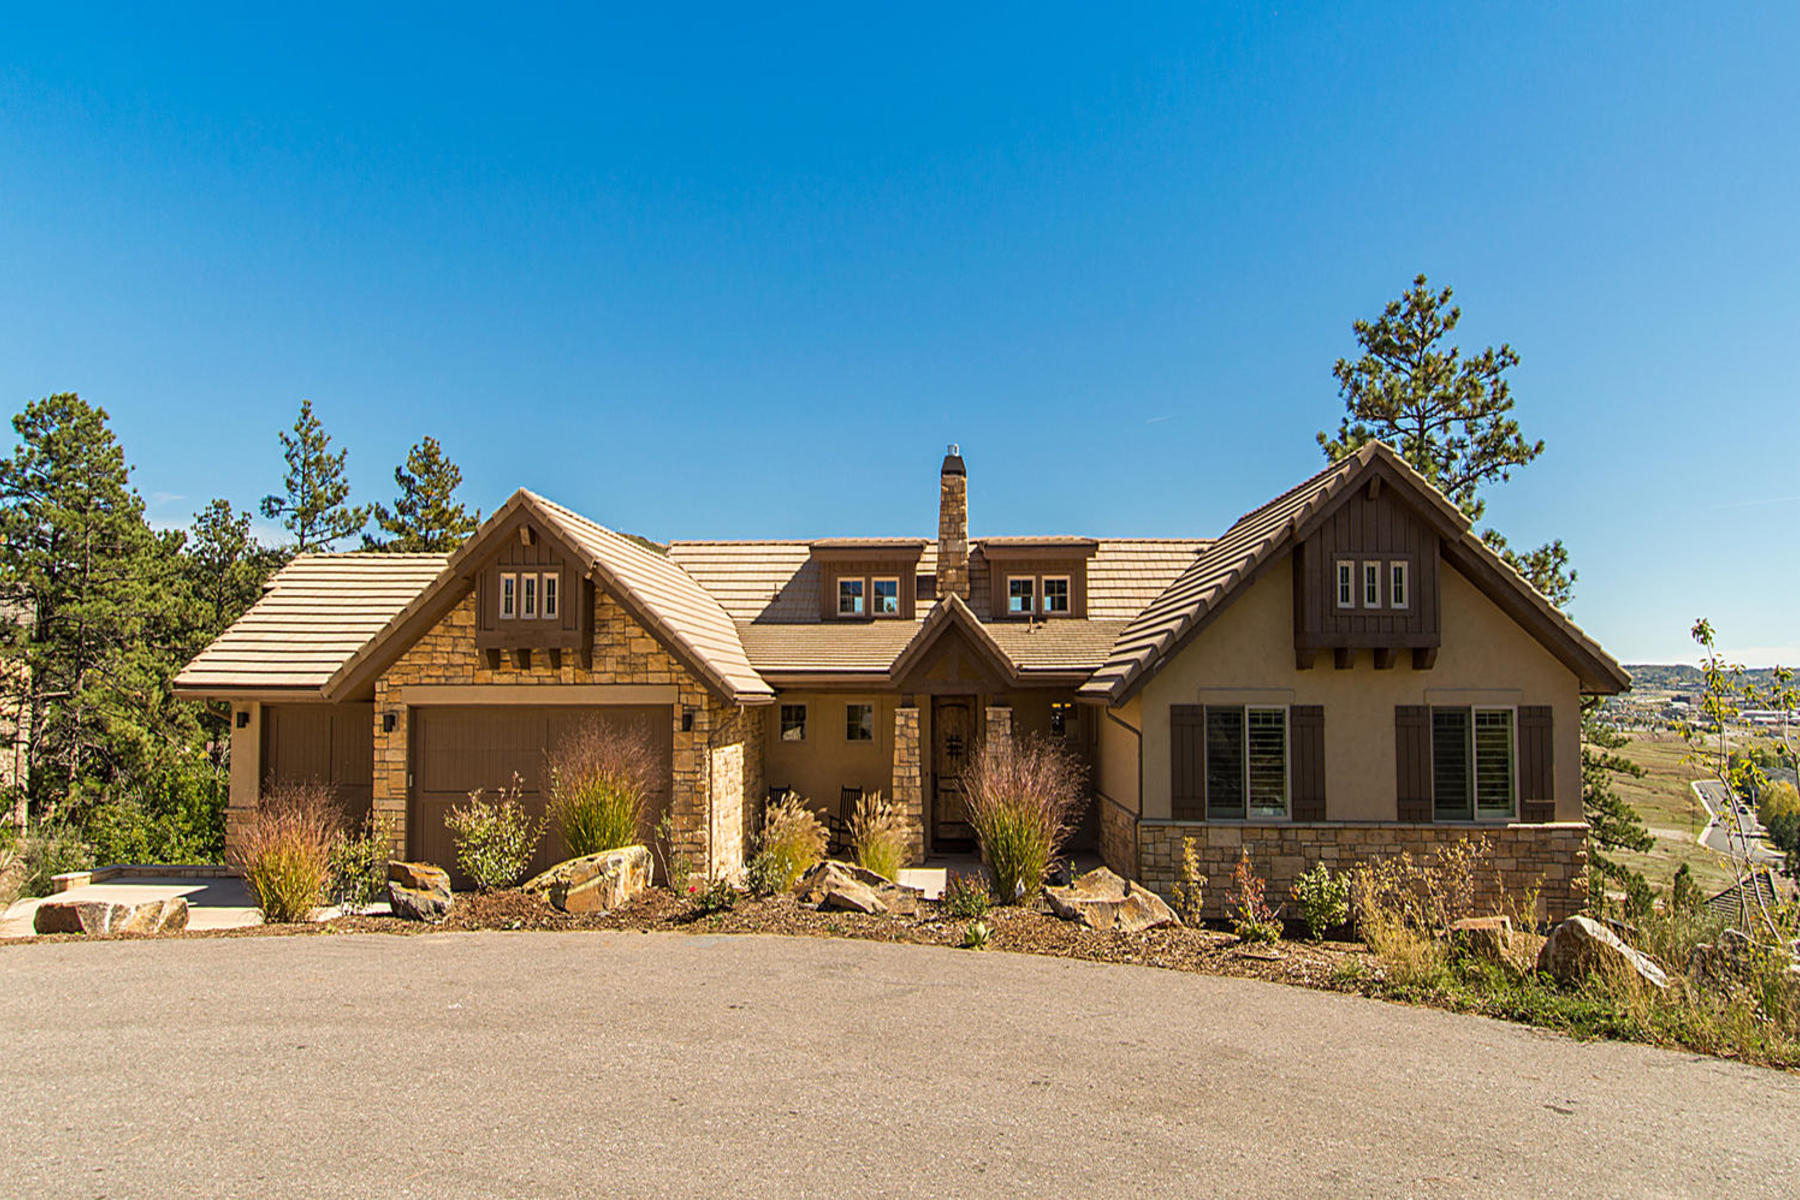 Single Family Home for Active at 653 Ruby Trust Dr 653 Ruby Trust Dr Castle Rock, Colorado 80108 United States